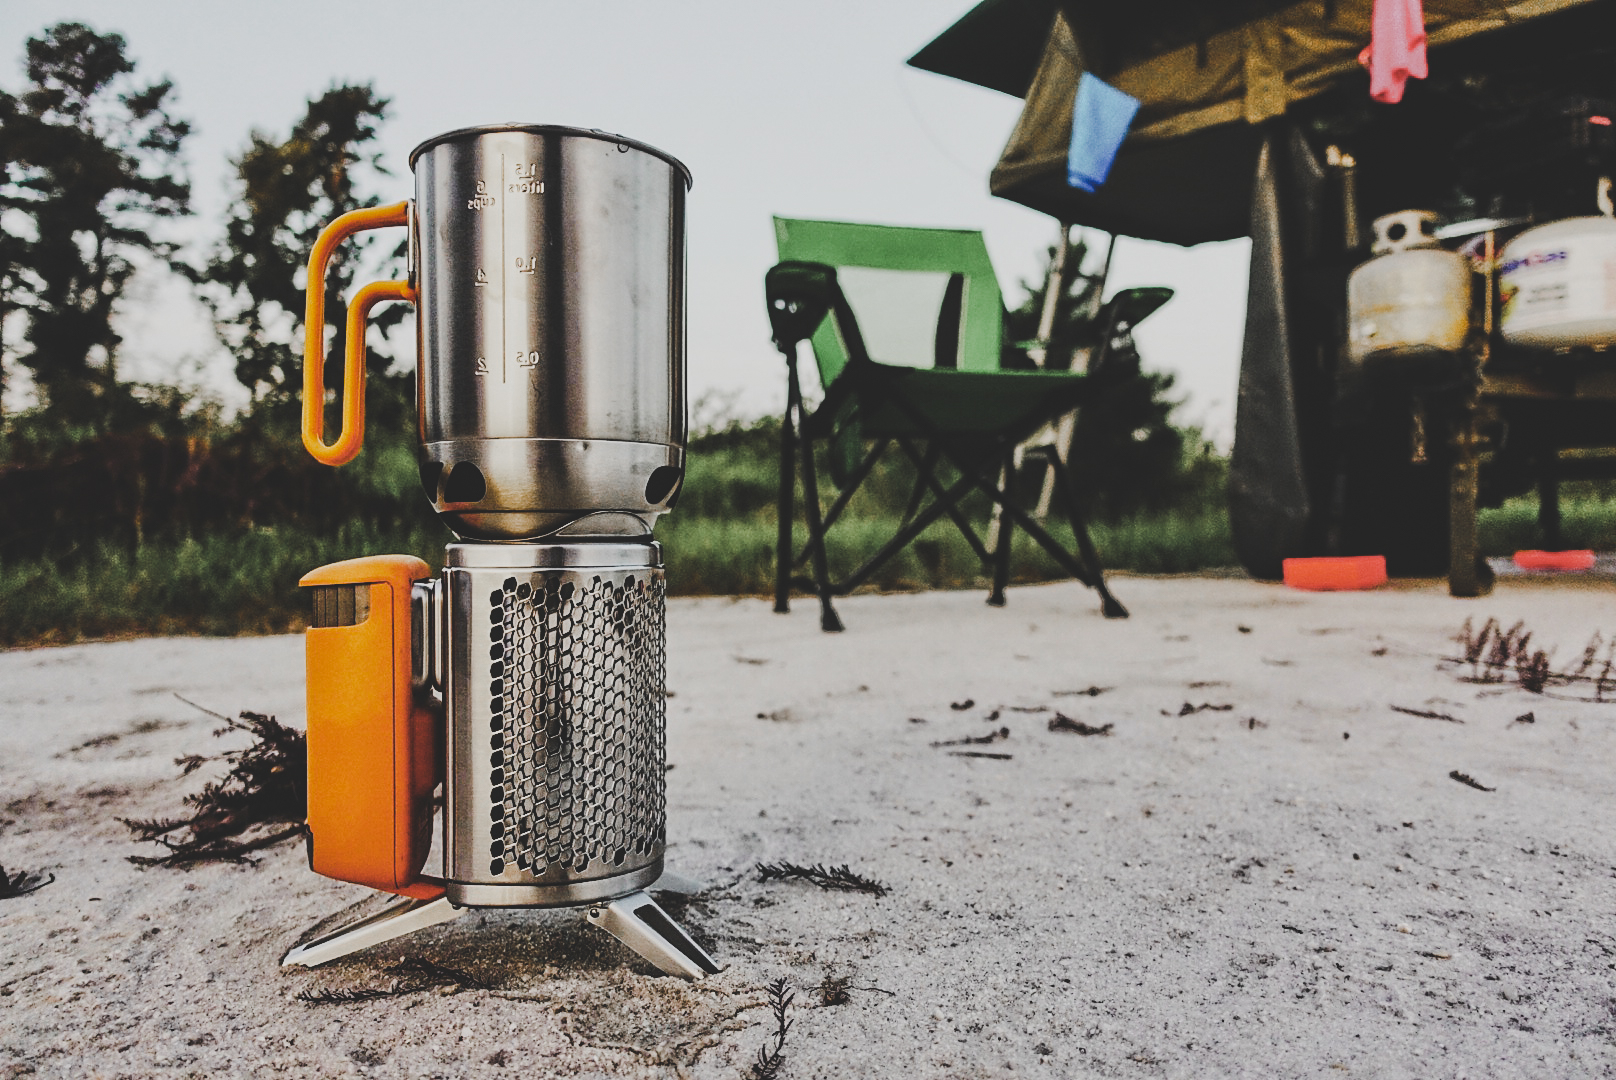 BioLite CampStove 2 | $104 | Amazon